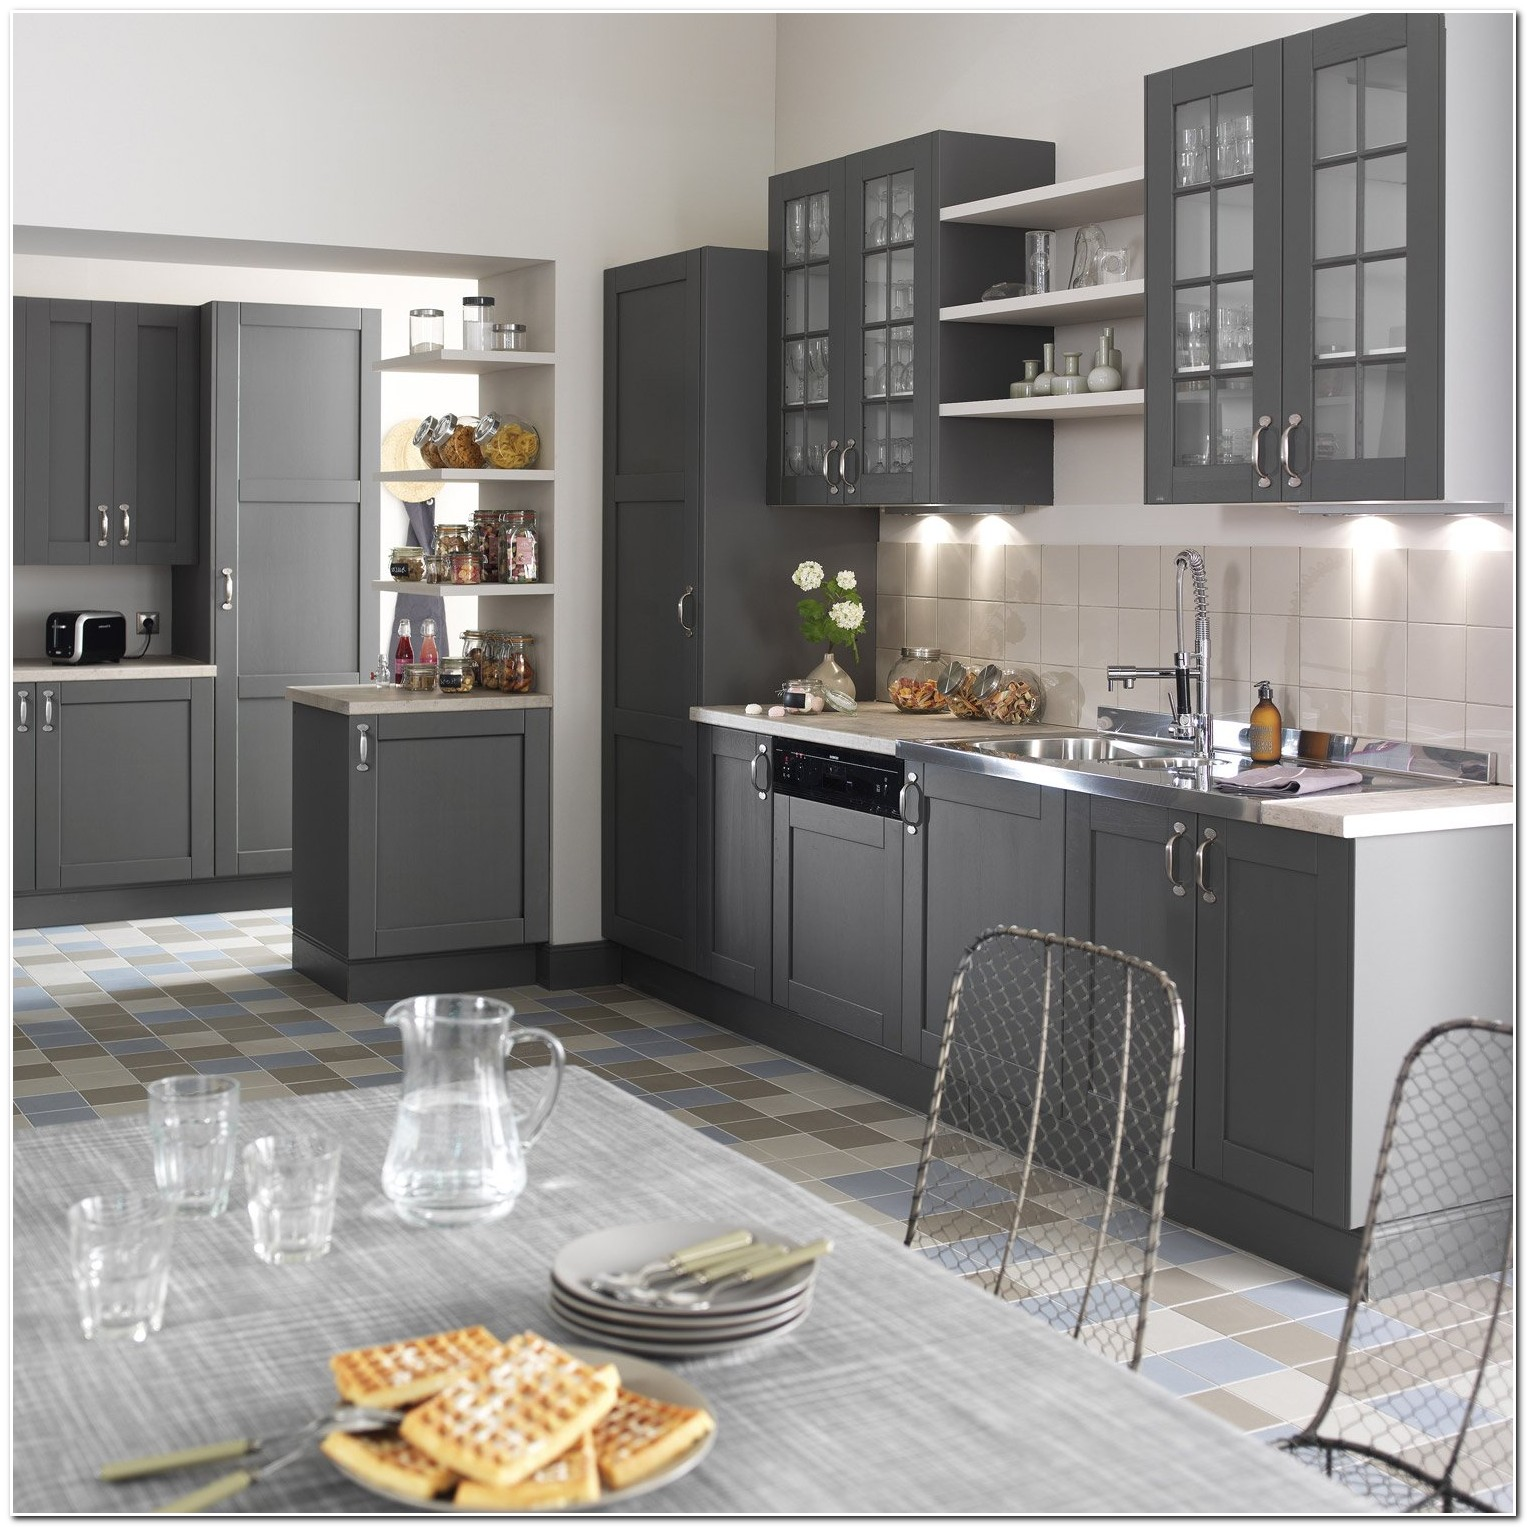 meuble suspendu cuisine leroy merlin cuisine id es de. Black Bedroom Furniture Sets. Home Design Ideas